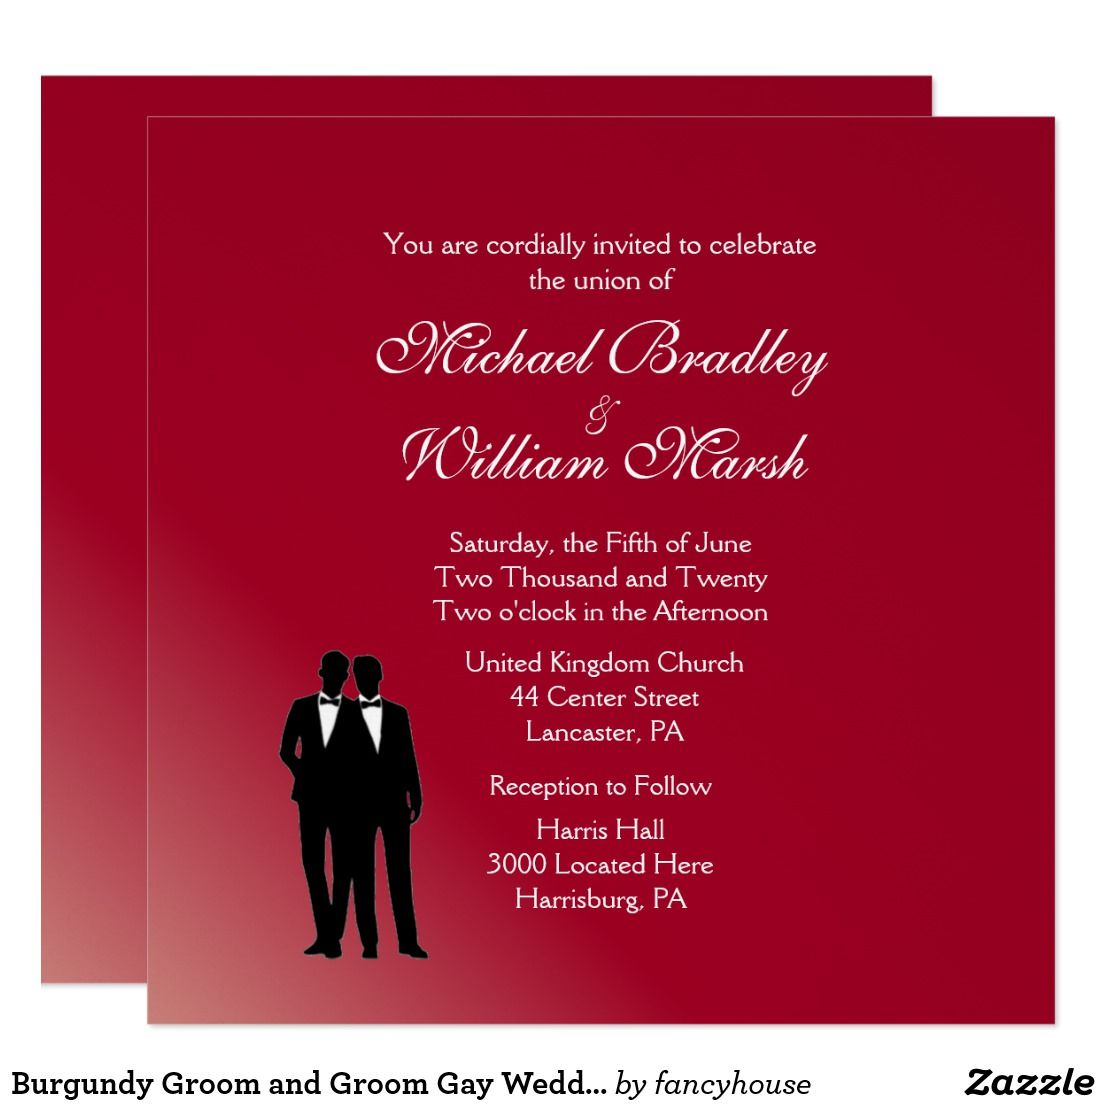 Inspirational Wedding Invitations Zazzle | Lenq.me